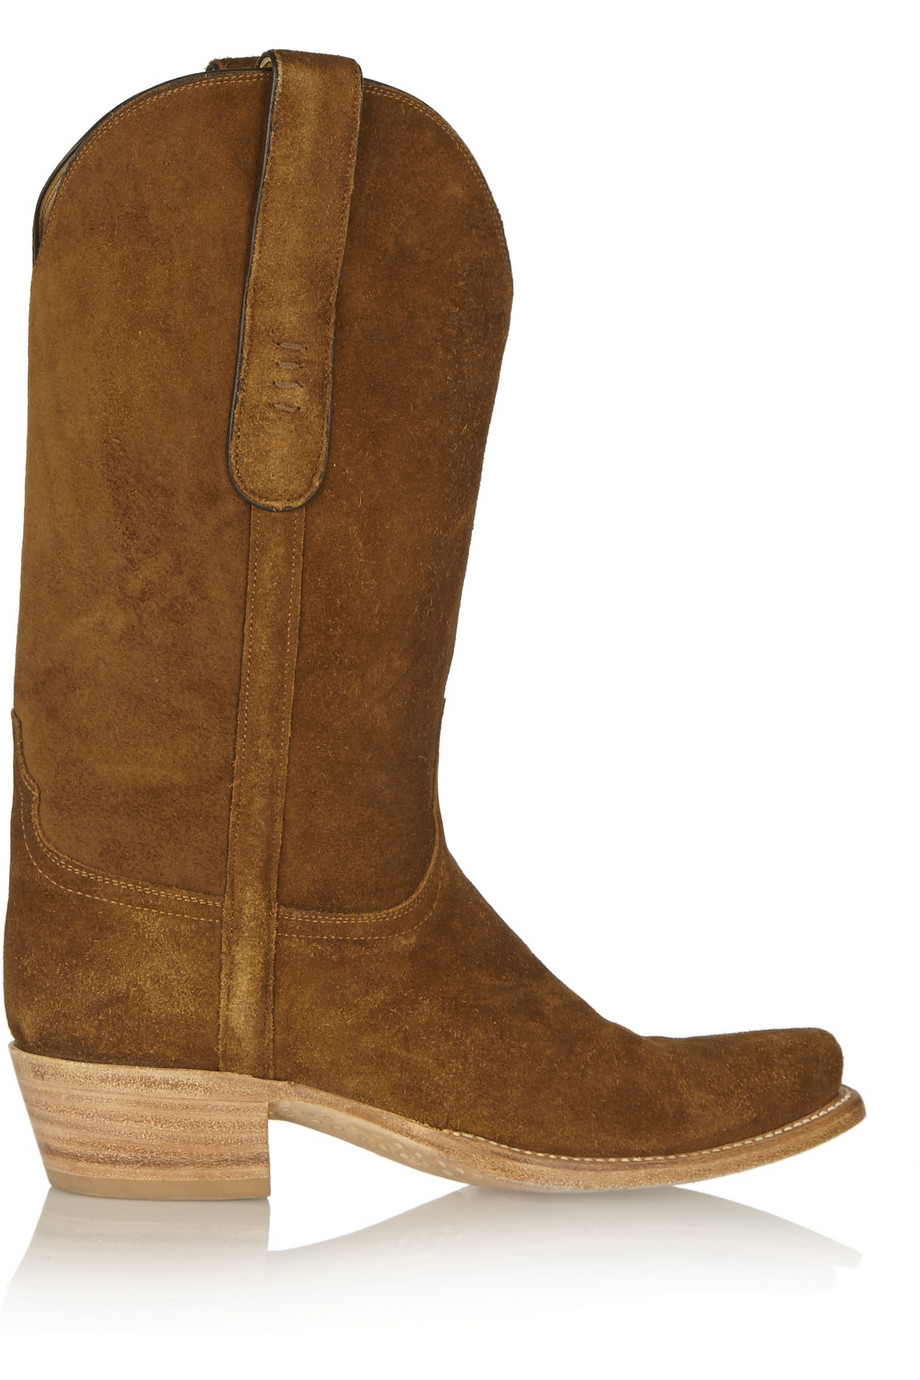 d96710a6908 Suede Western Boots - Ivoiregion